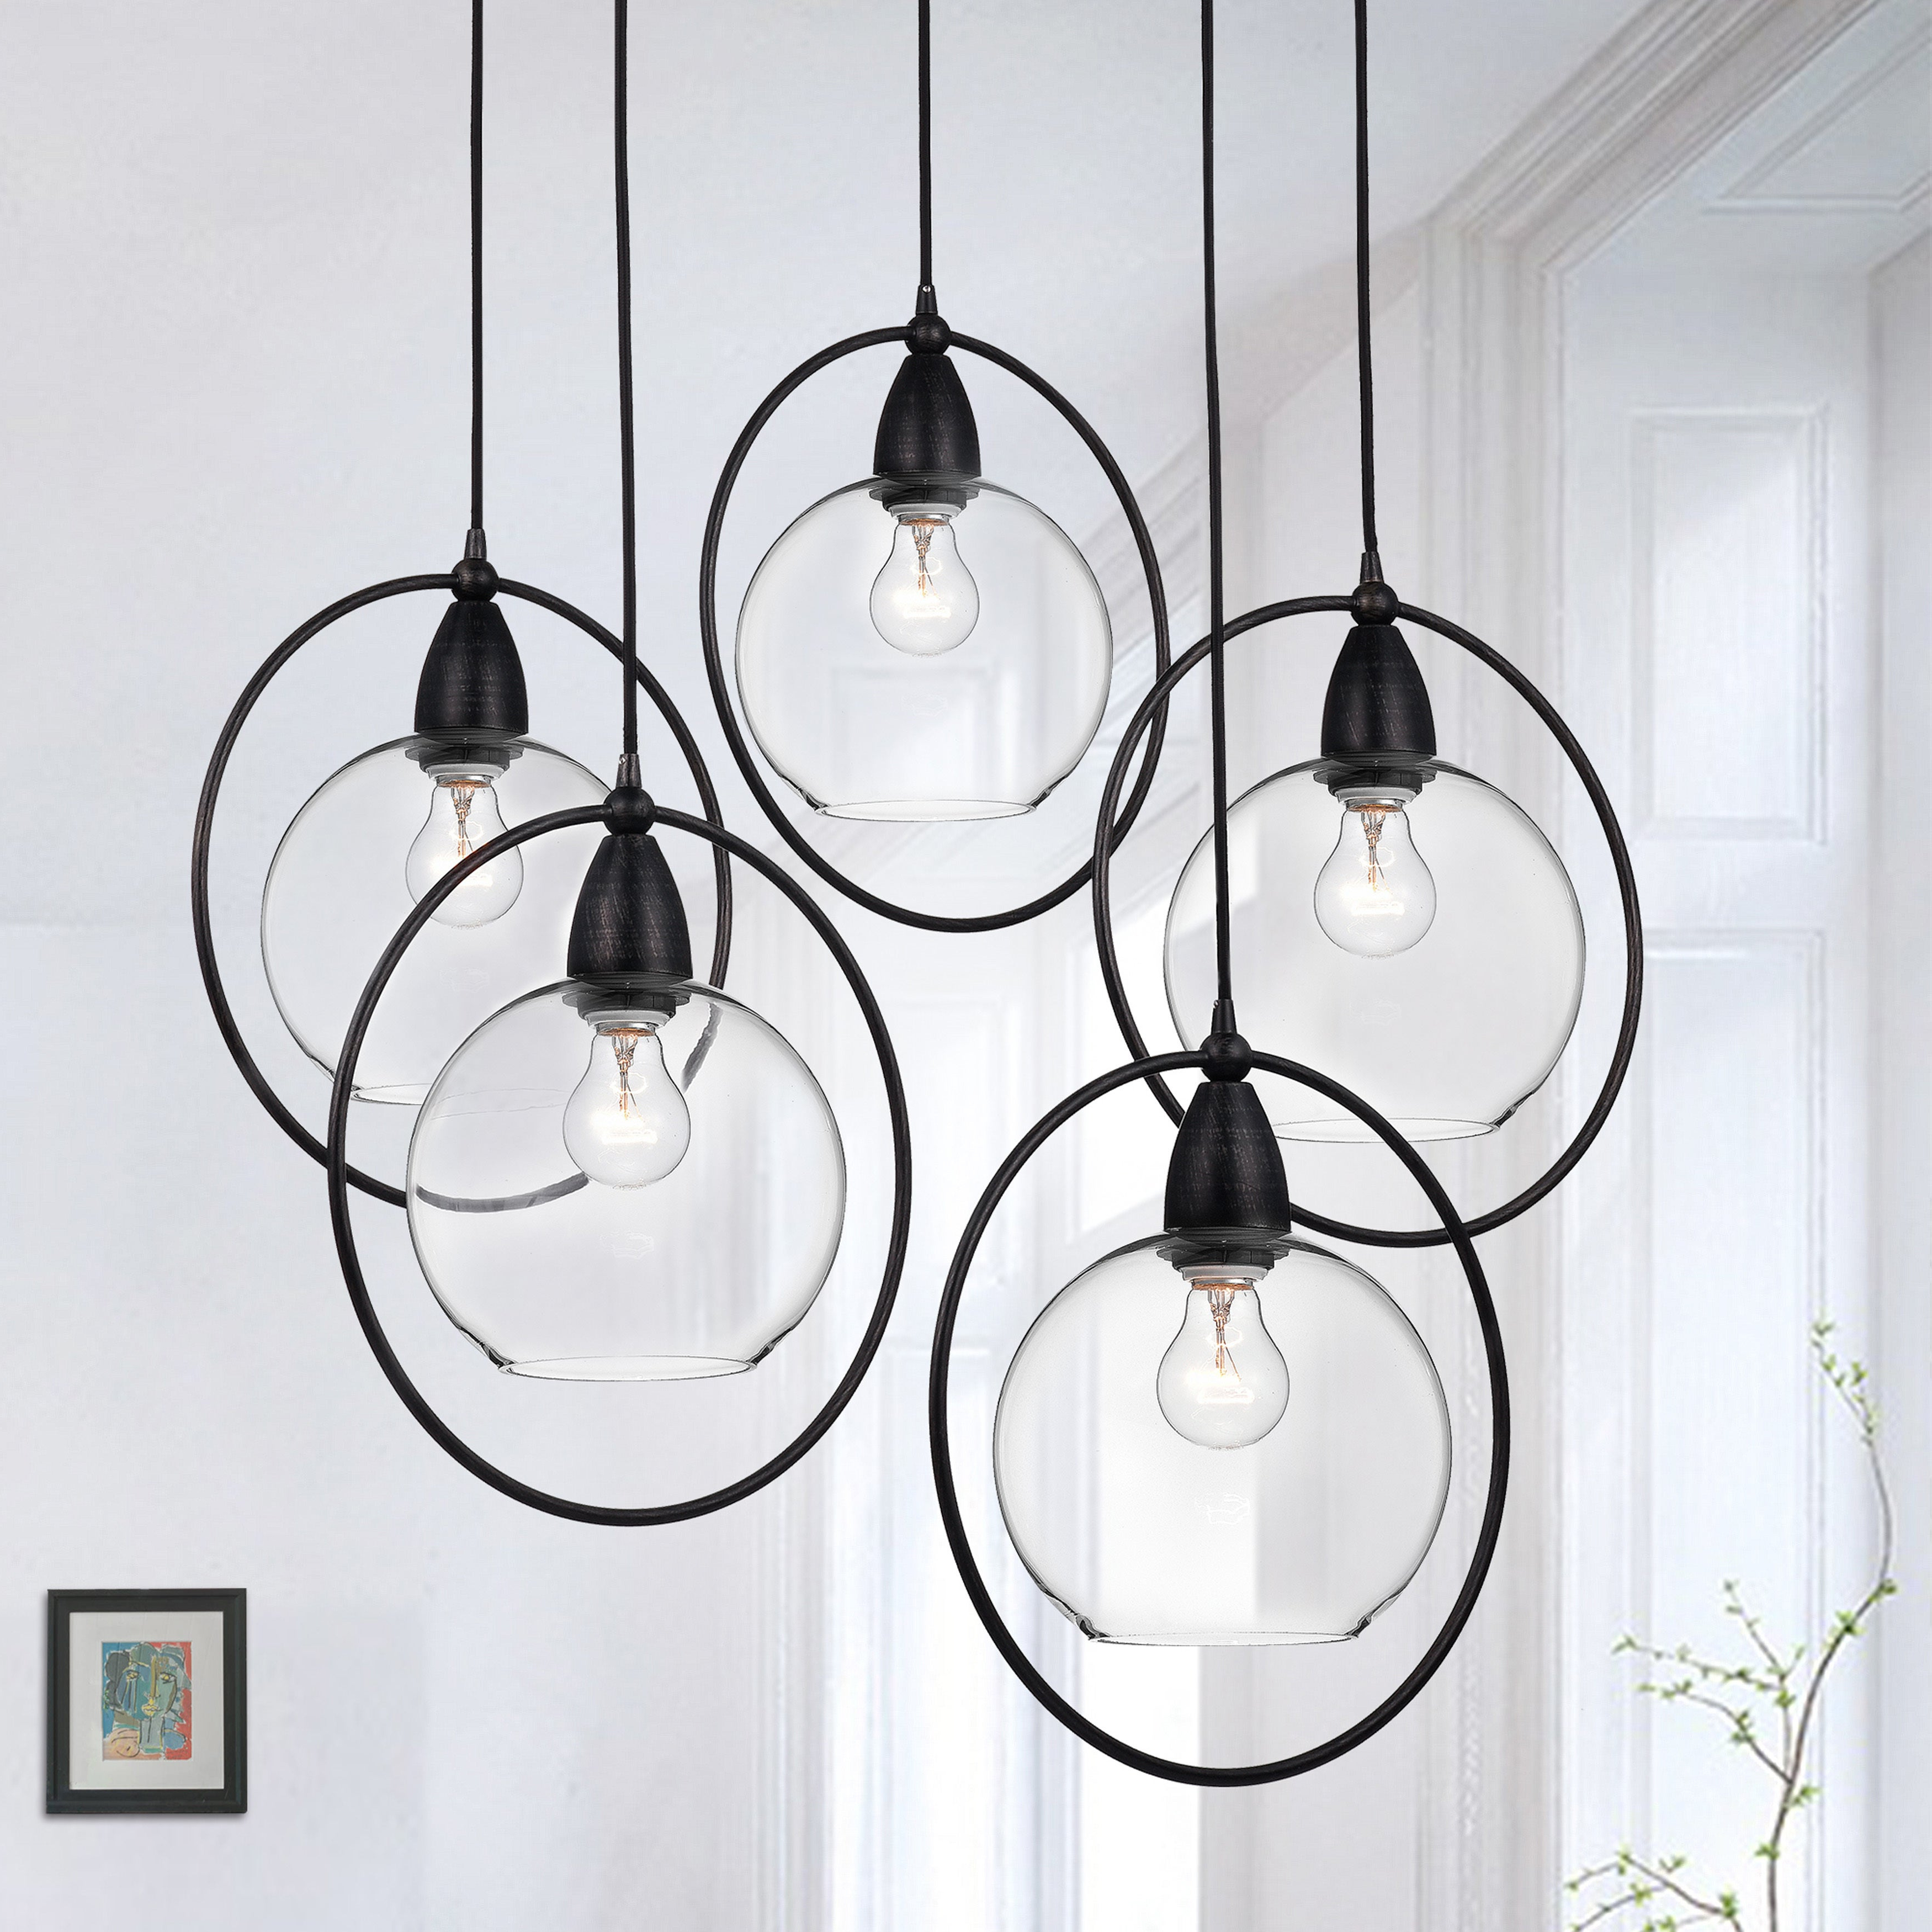 Adriana Black 1 Light Single Dome Pendants Within Well Known Oil Rubbed Chandeliers (View 9 of 25)